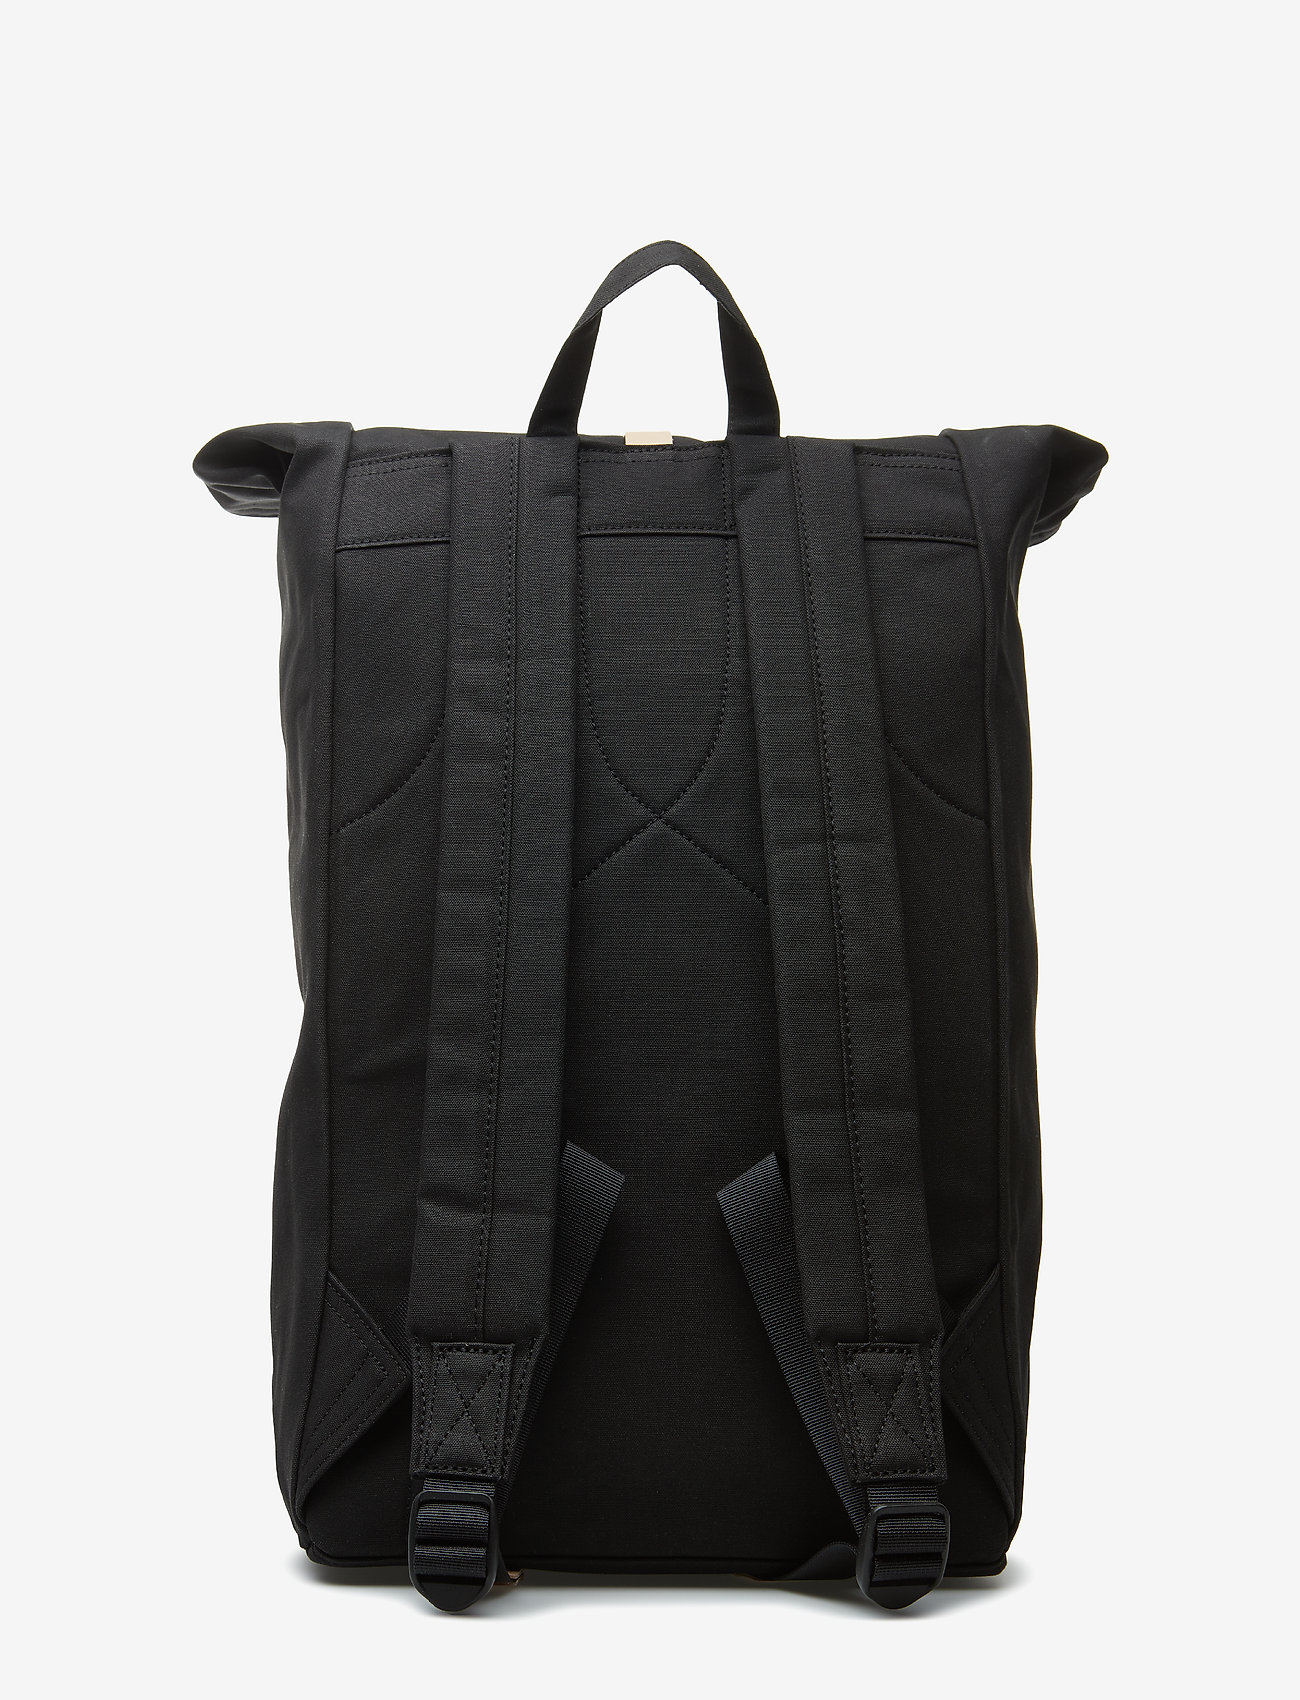 SANDQVIST - DANTE - backpacks - black with natural leather